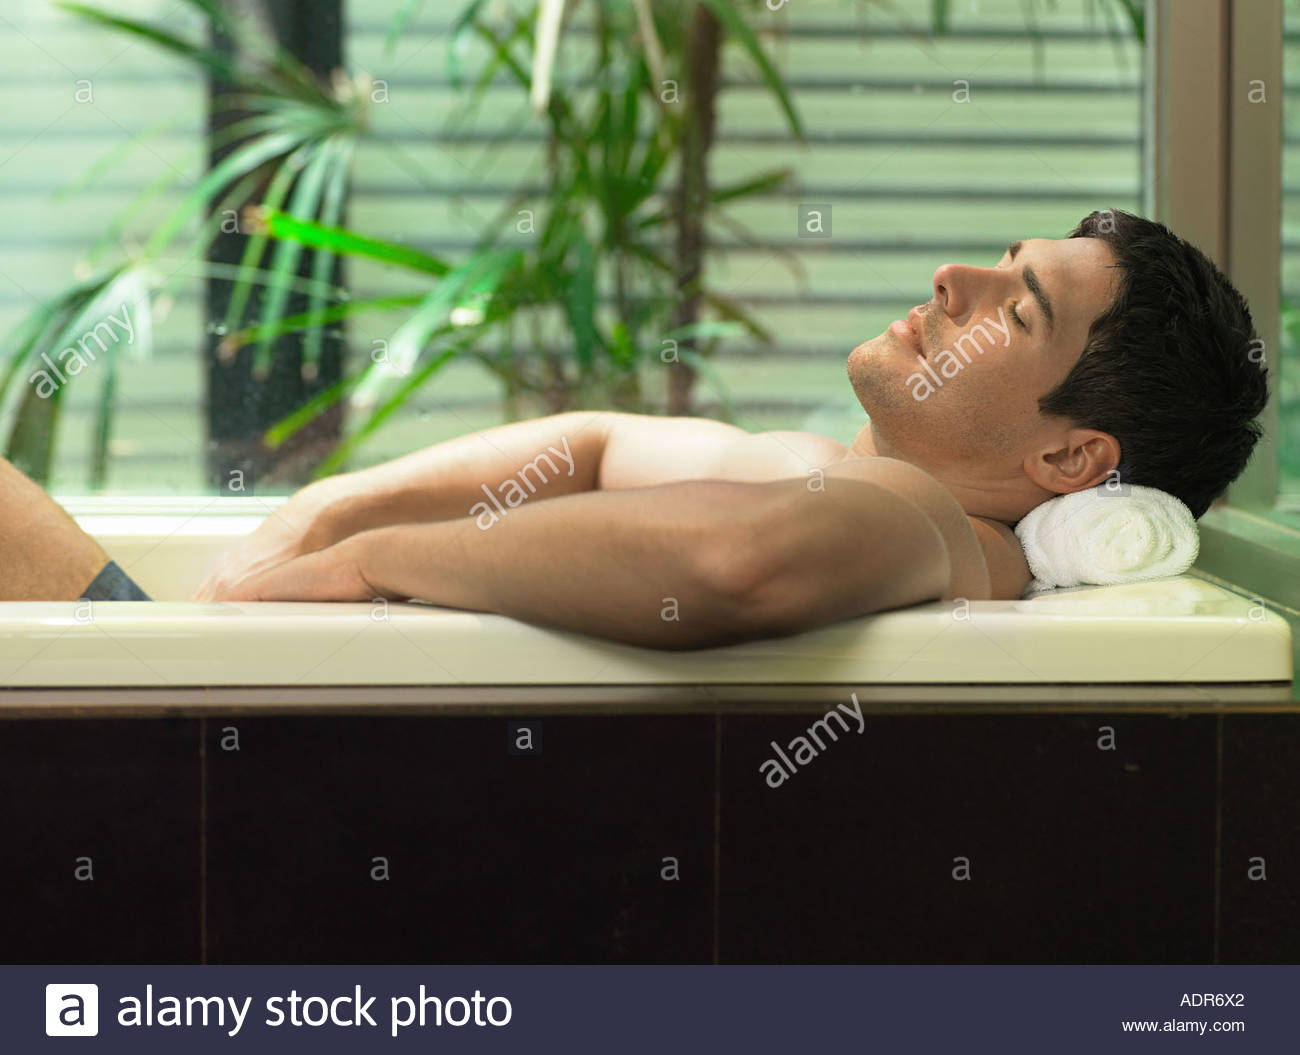 Man relaxing in the bath - Stock Image